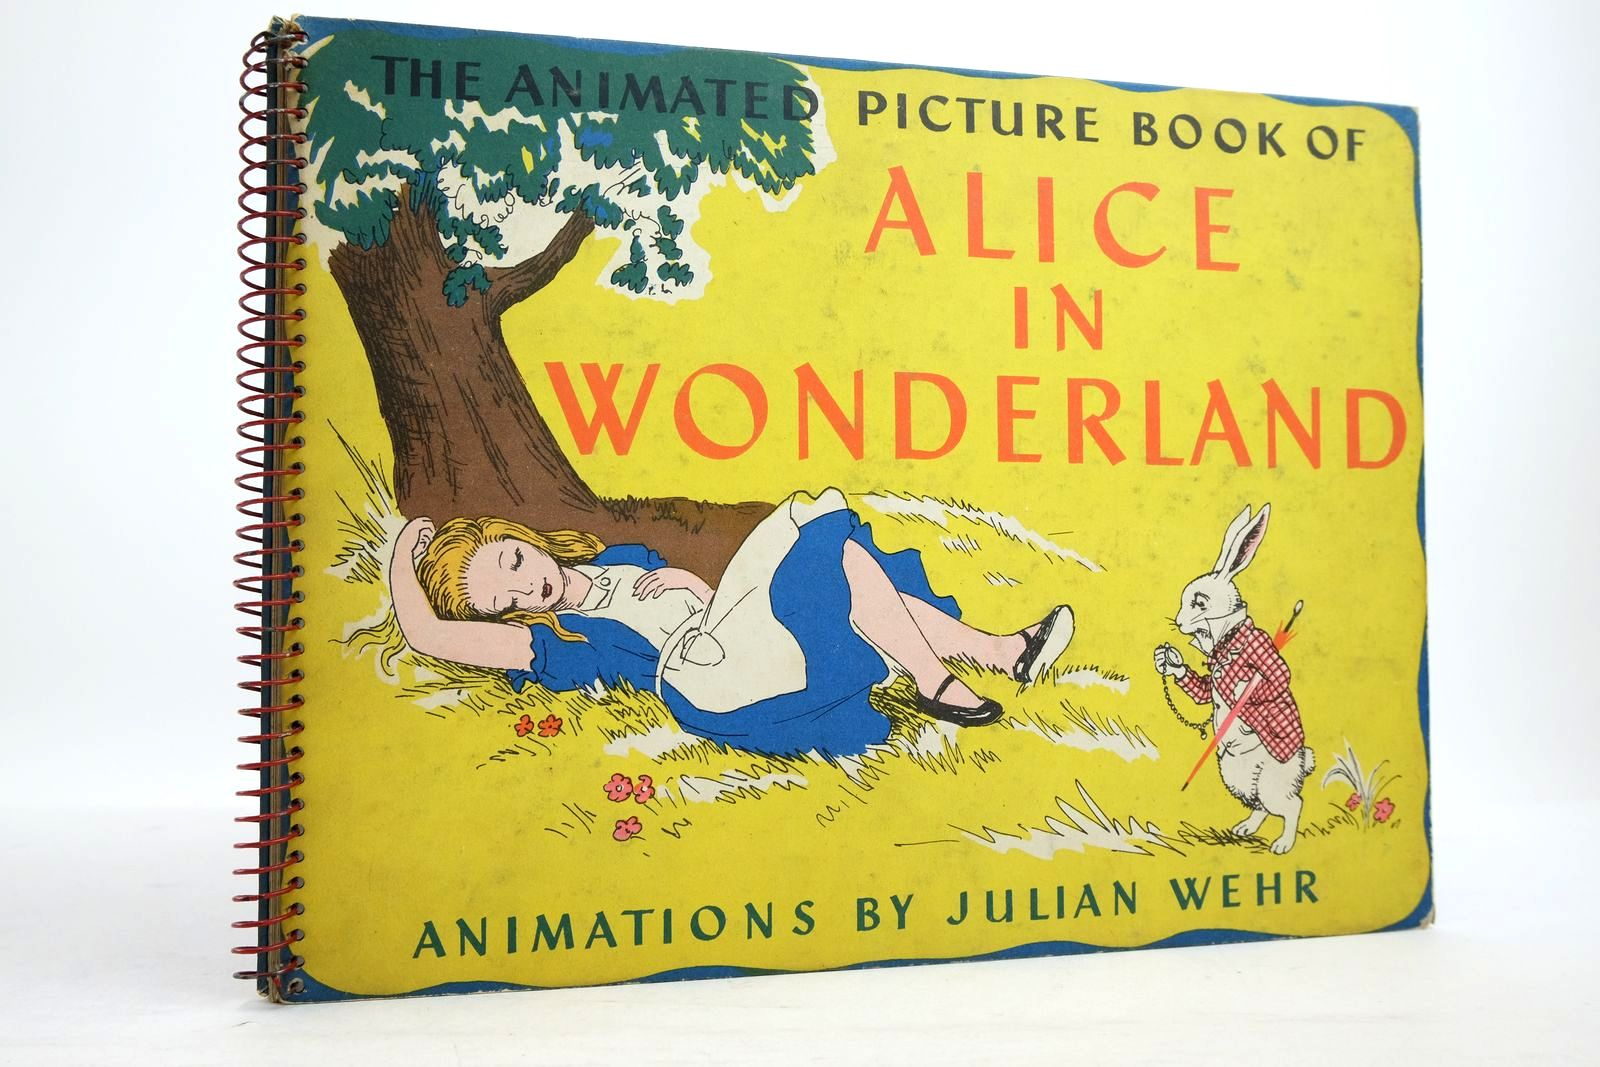 Photo of THE ANIMATED PICTURE BOOK OF ALICE IN WONDERLAND written by Carroll, Lewis illustrated by Wehr, Julian published by The Pilot Press Ltd. (STOCK CODE: 2134710)  for sale by Stella & Rose's Books